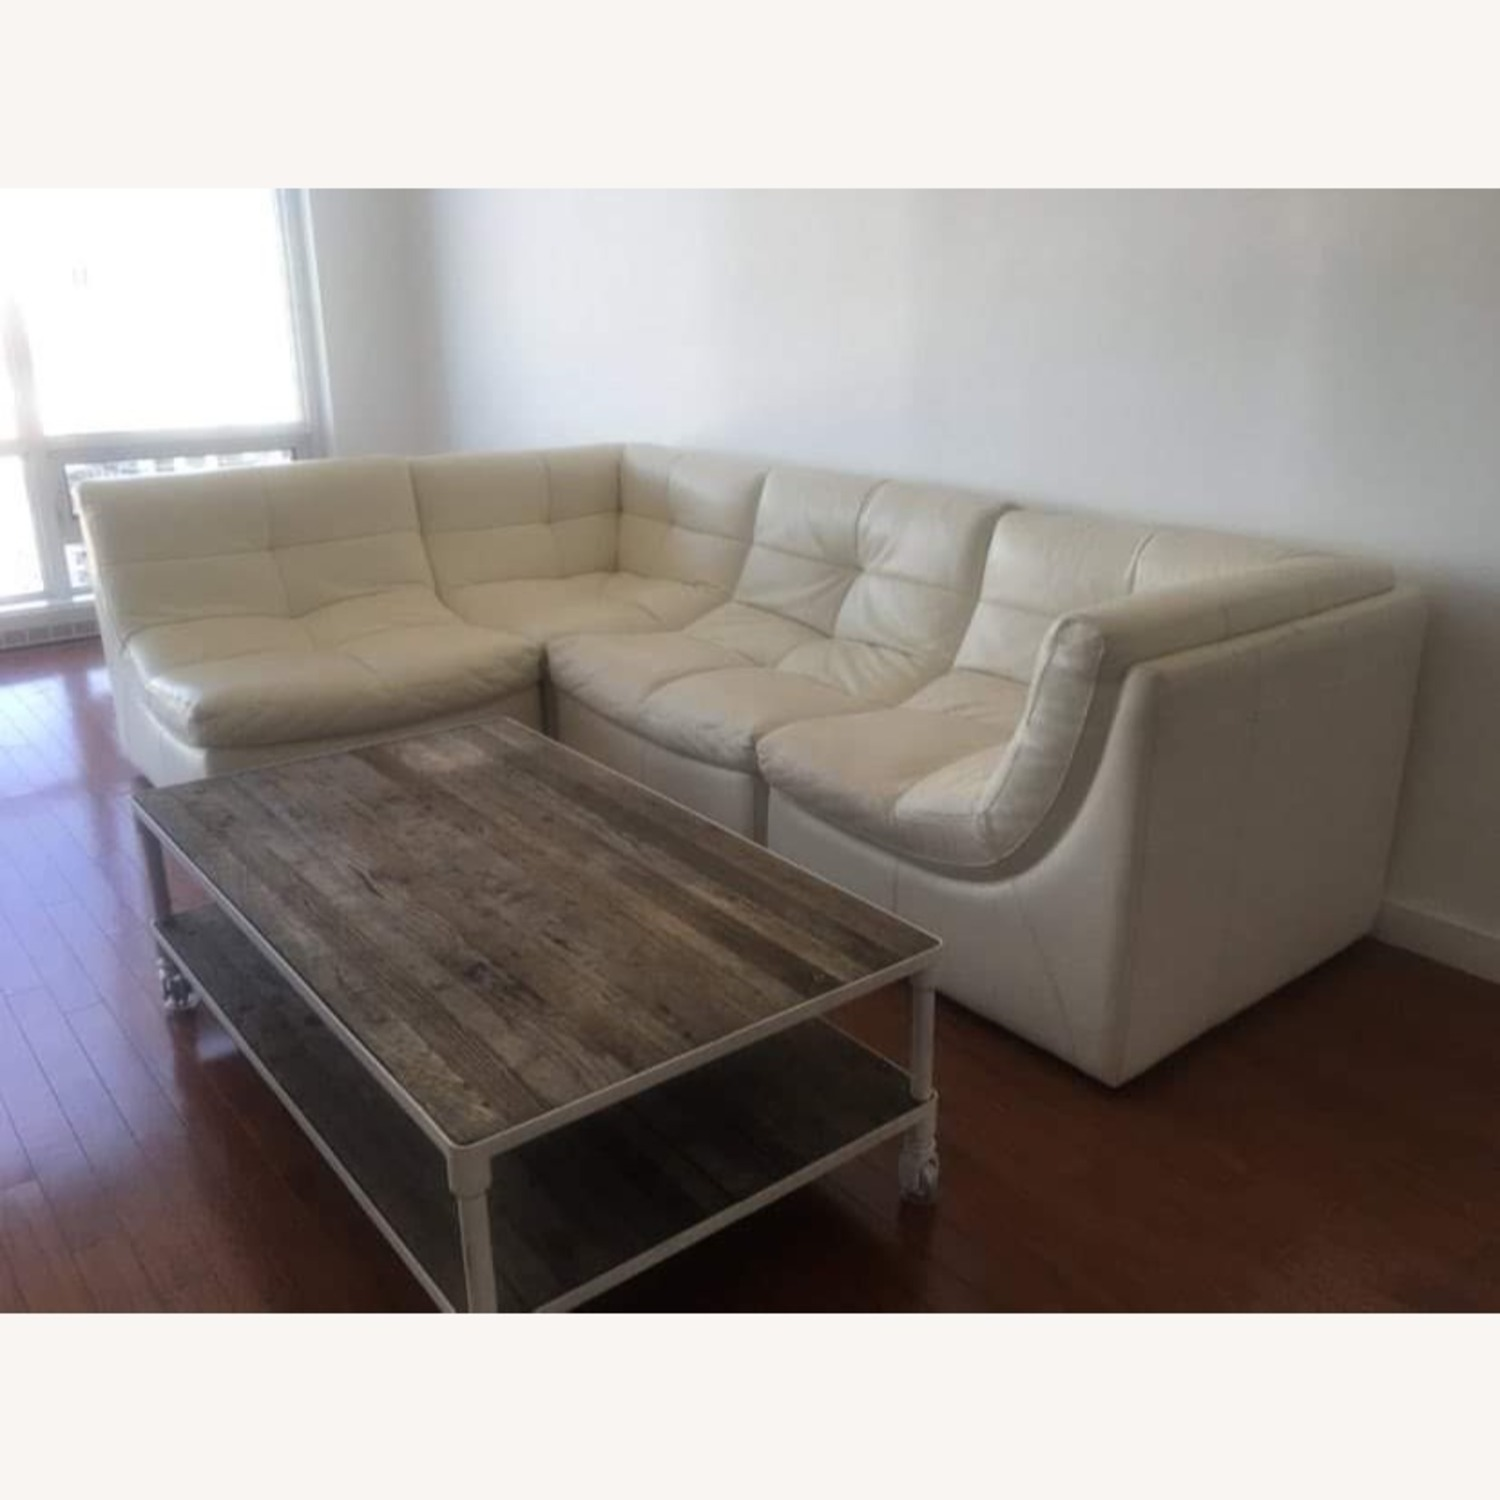 Zgallerie White Leather Sectional Sofa - image-1